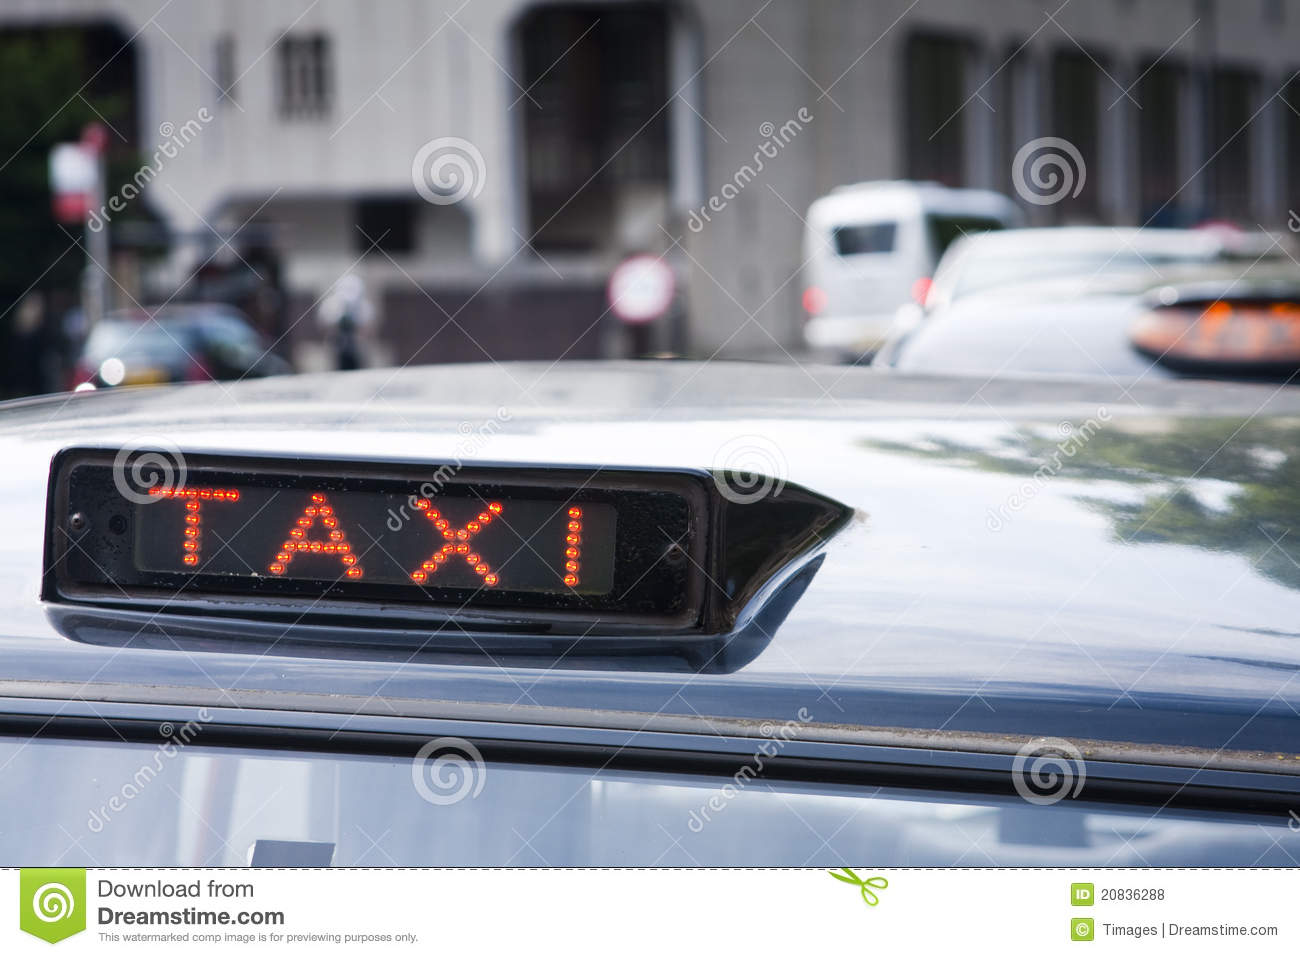 Taxi cab signs stock photo  Image of transport, symbol